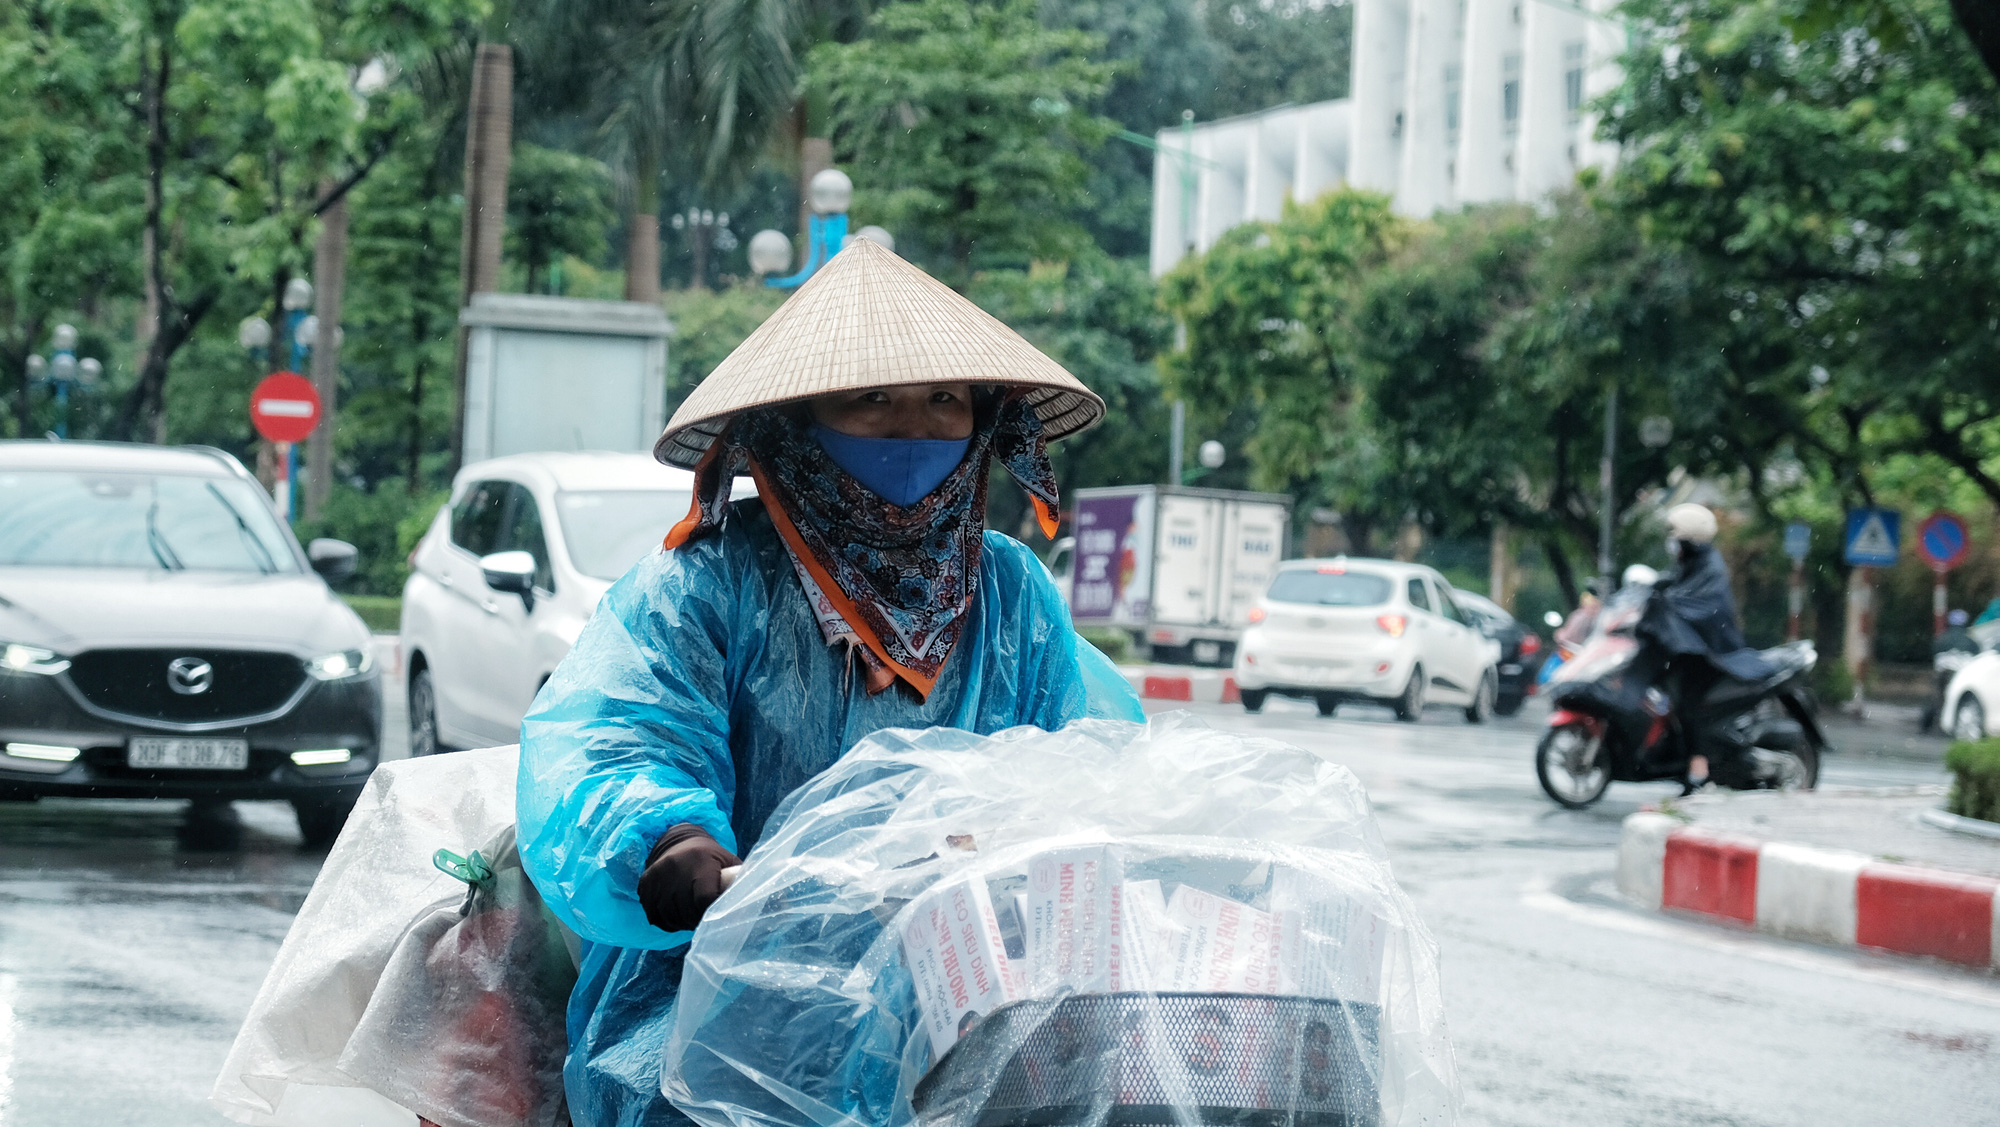 Kim Anh, a street vendor, is back on the street to make a living after COVID-19 social distancing measures were relaxed in Hanoi, Vietnam. Photo: Mai Thuong / Tuoi Tre